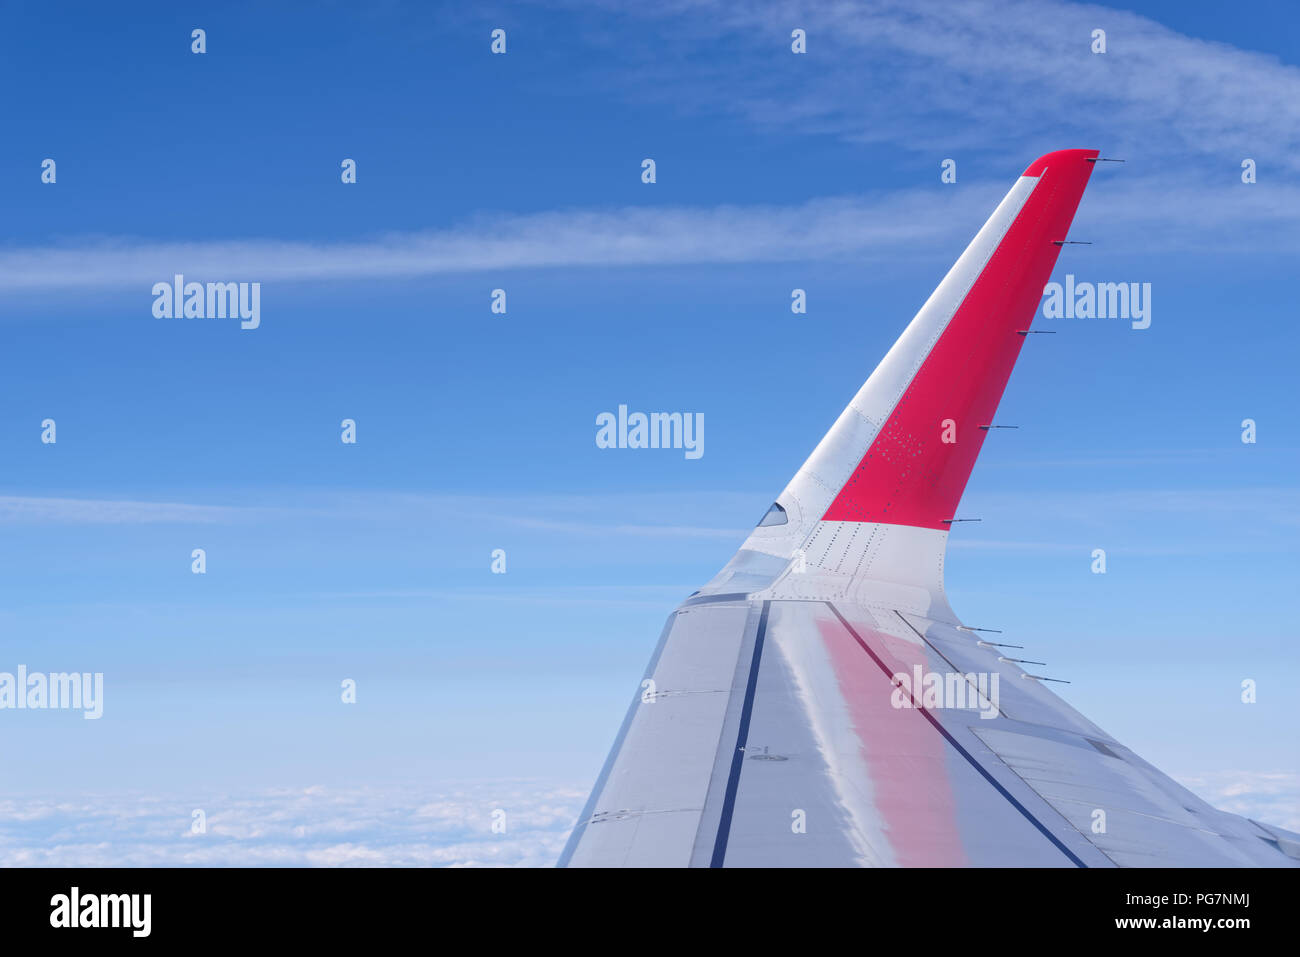 Airplane wing with red colored winglet against blue sky. View from porthole - Stock Image